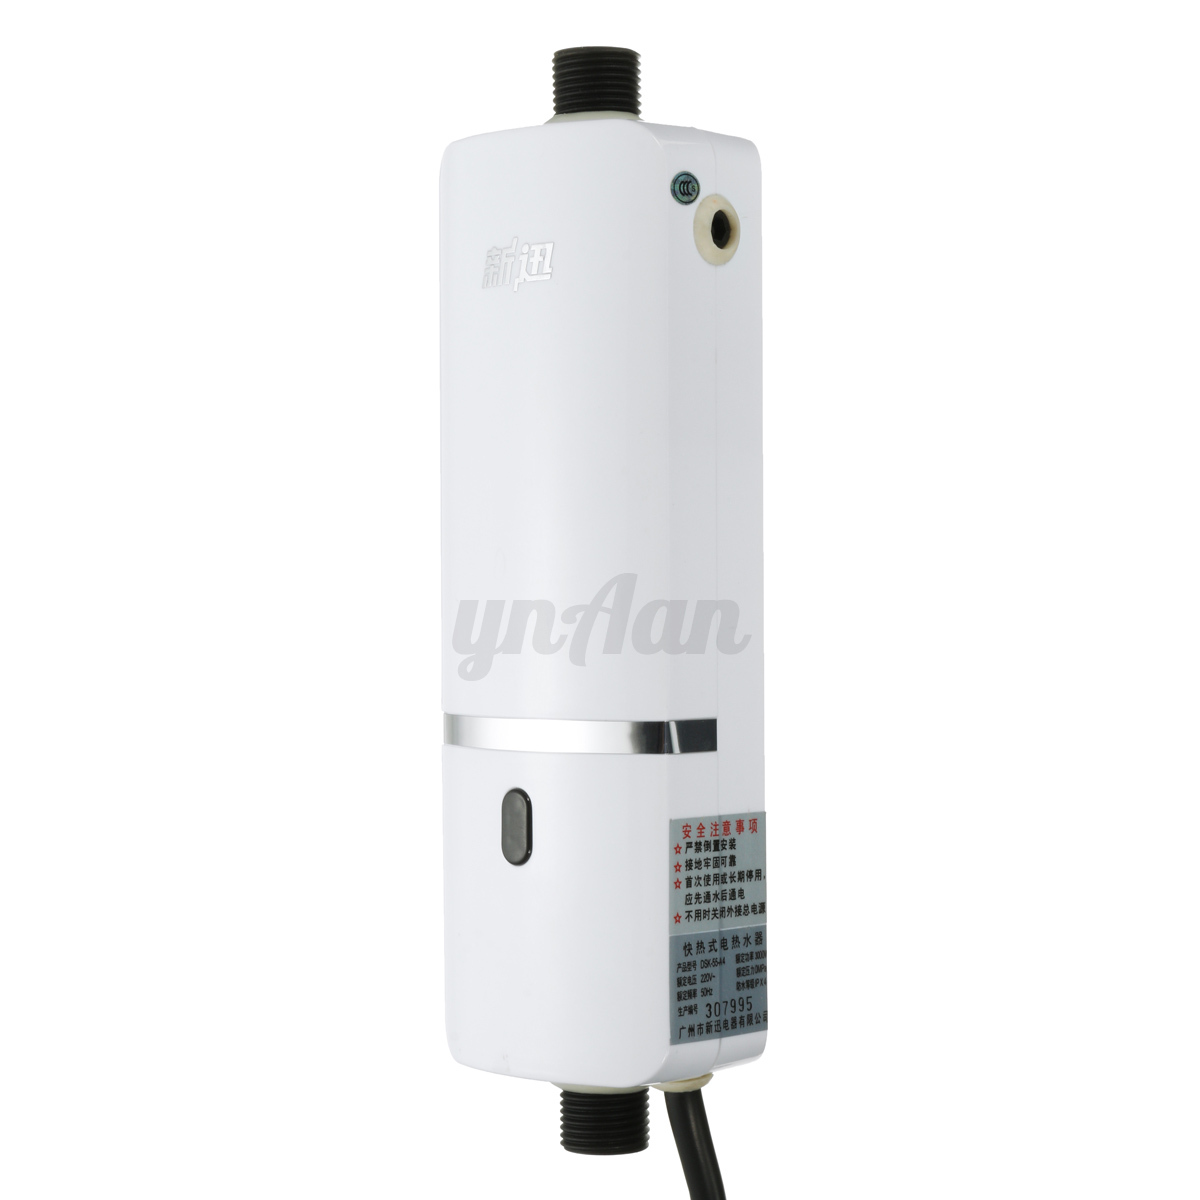 Bathroom kitchen electric instant hot water system for 5 bathroom tankless water heater